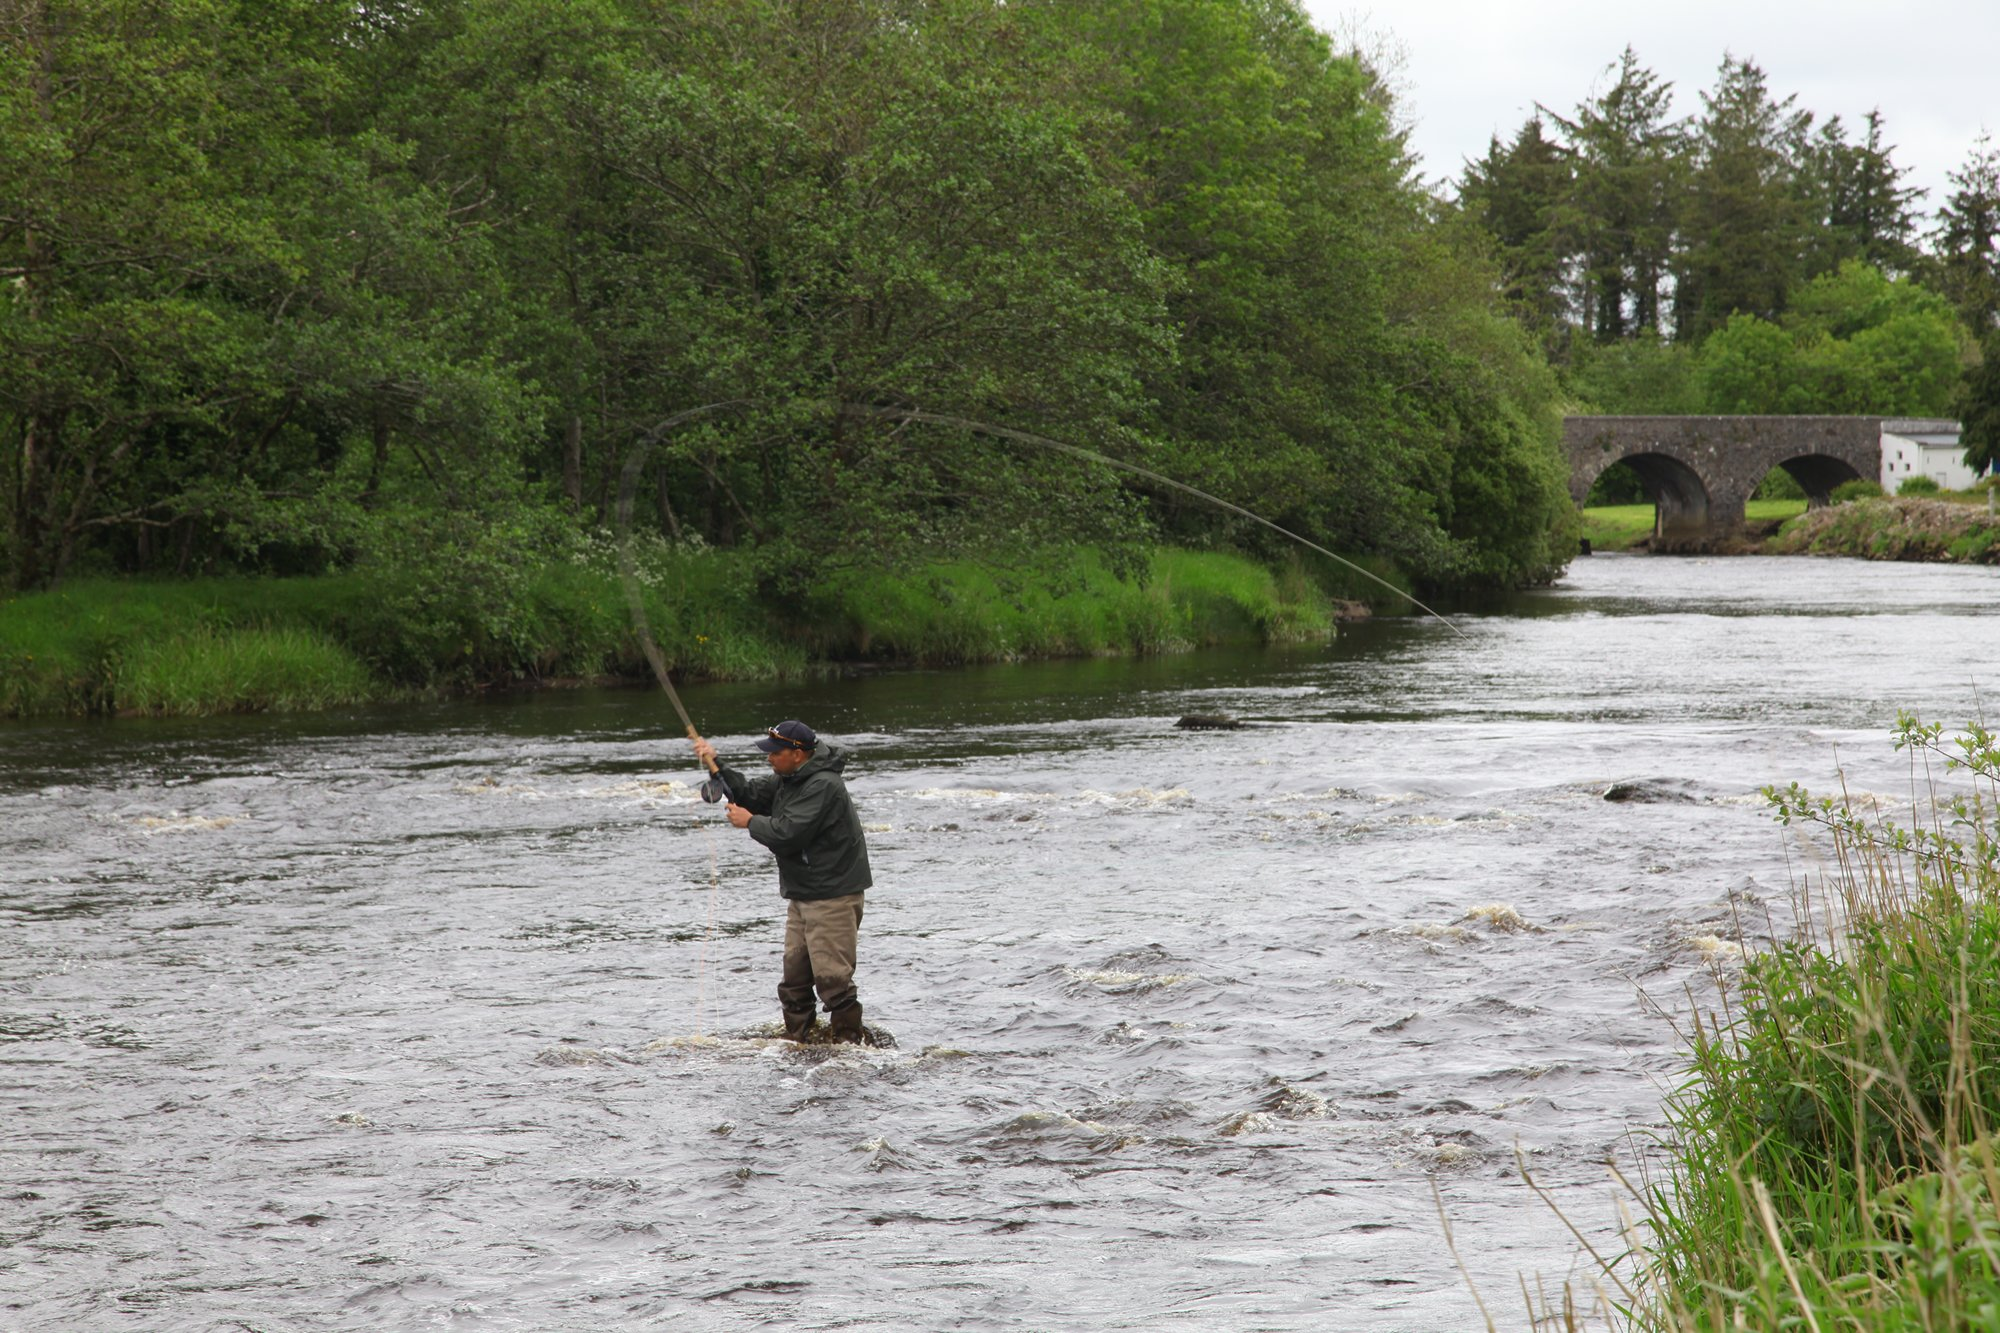 Casting at the Moy